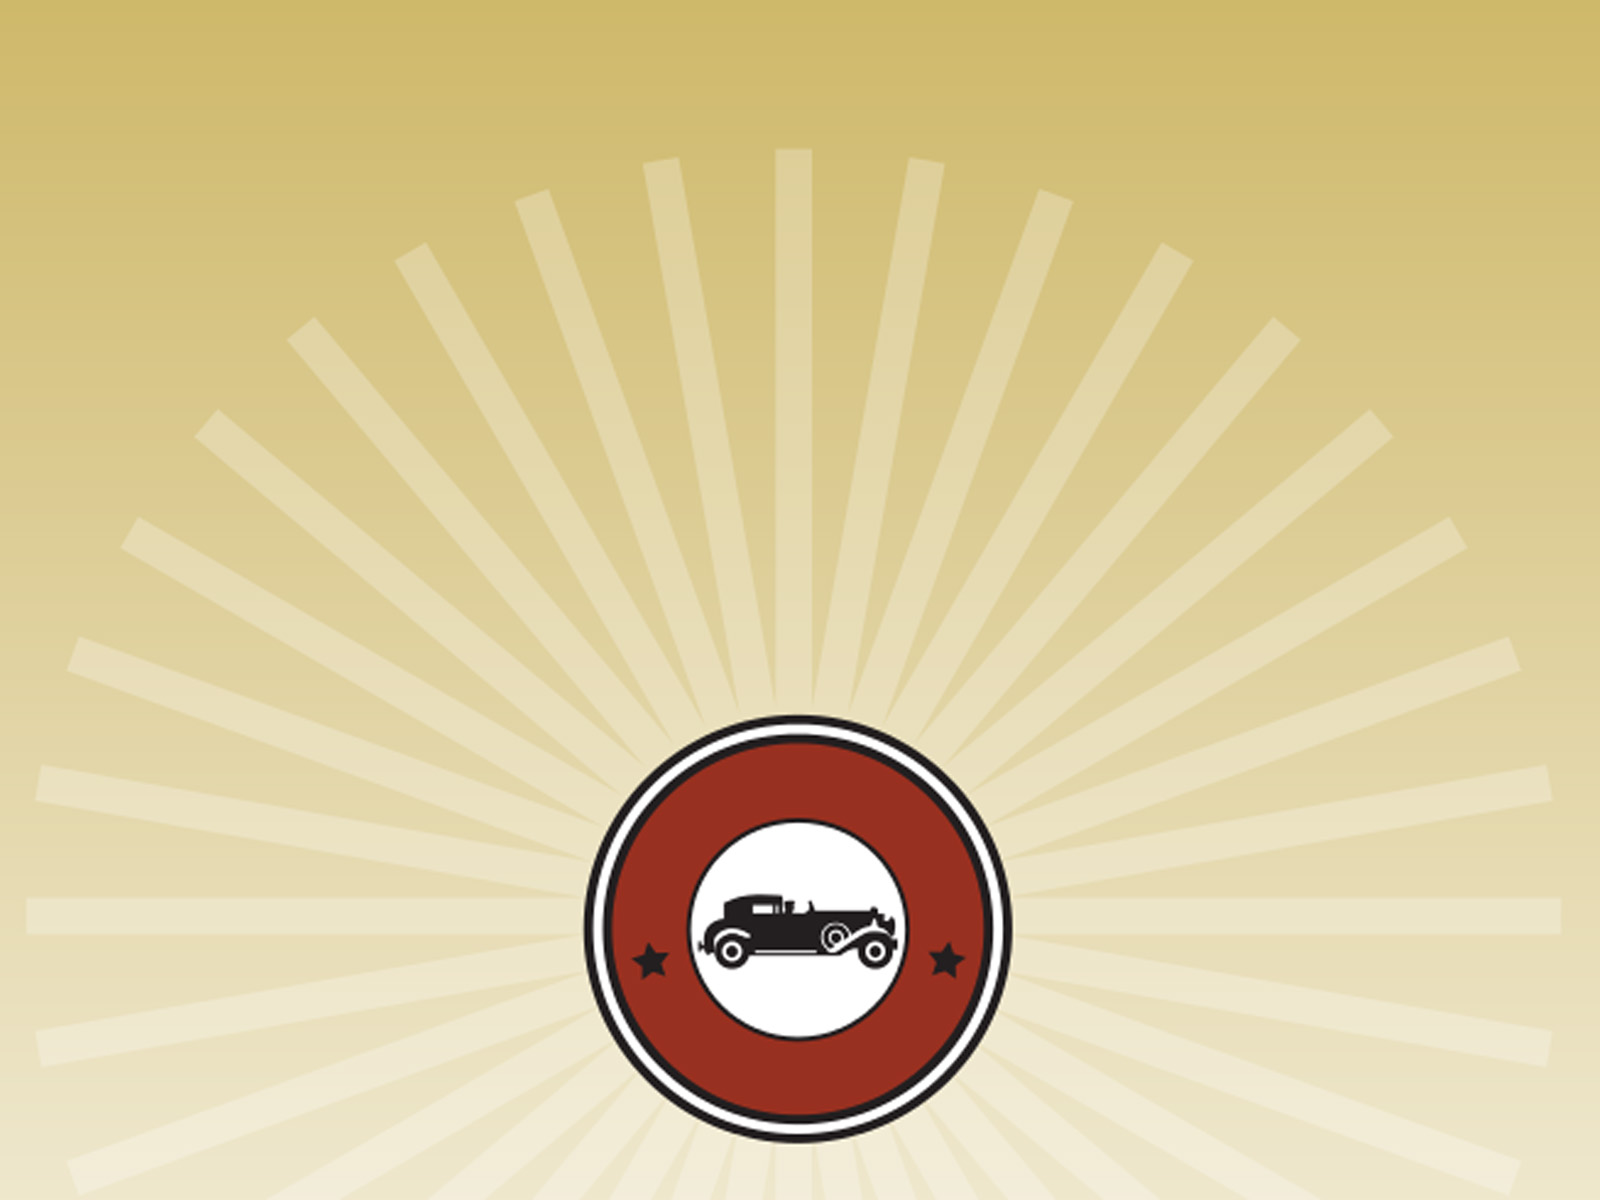 Vintage Car Icon Powerpoint Backgrounds